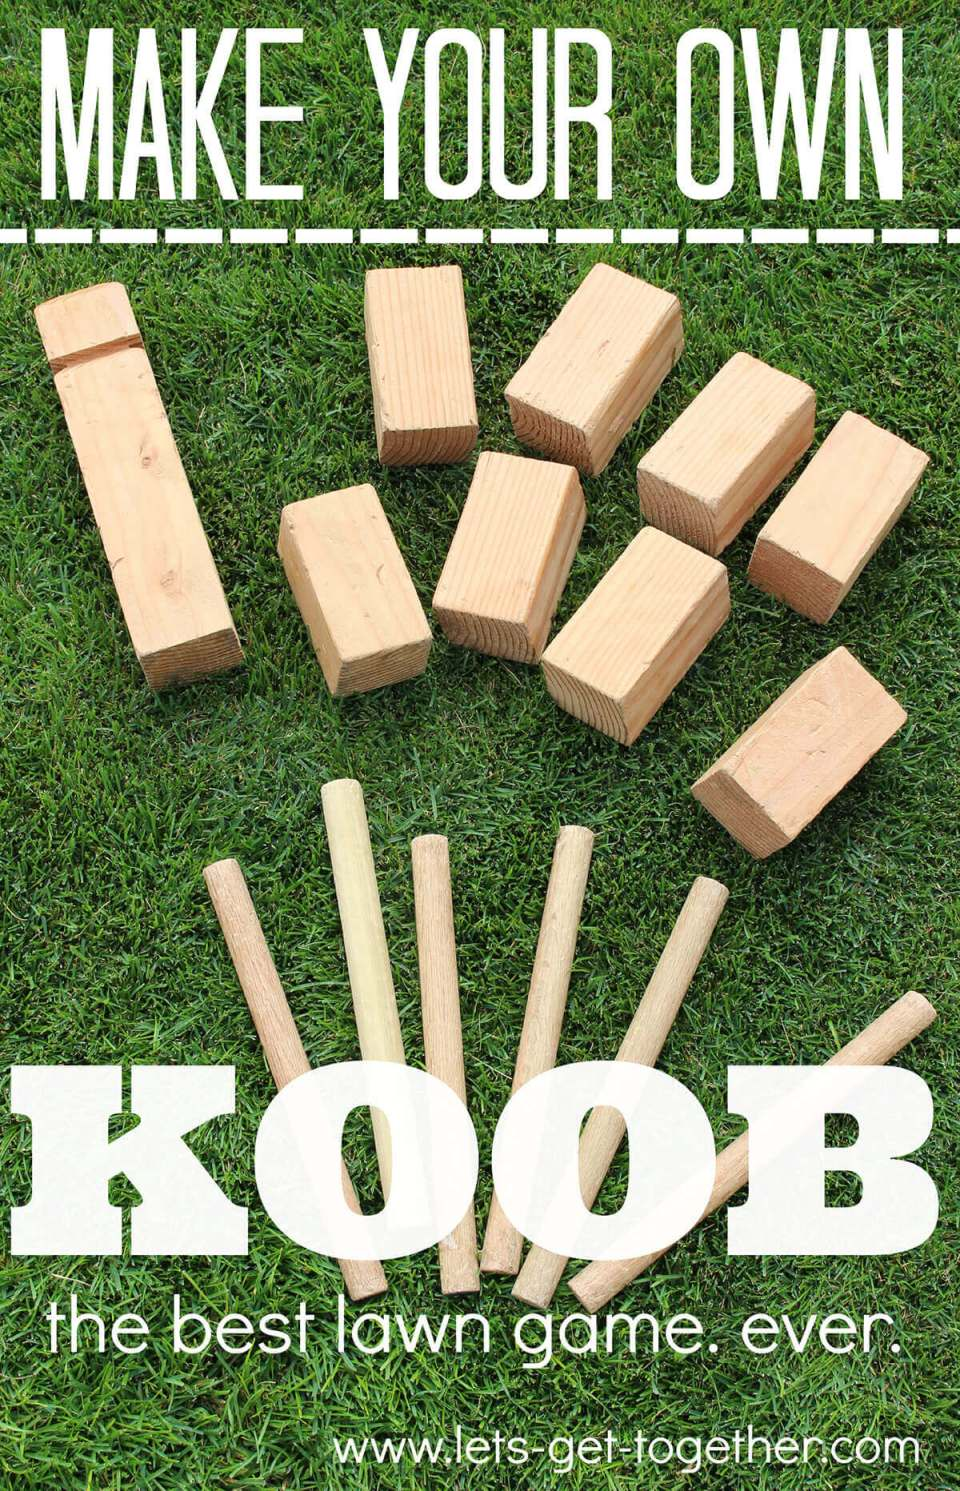 DIY Koob Lawn Game Set